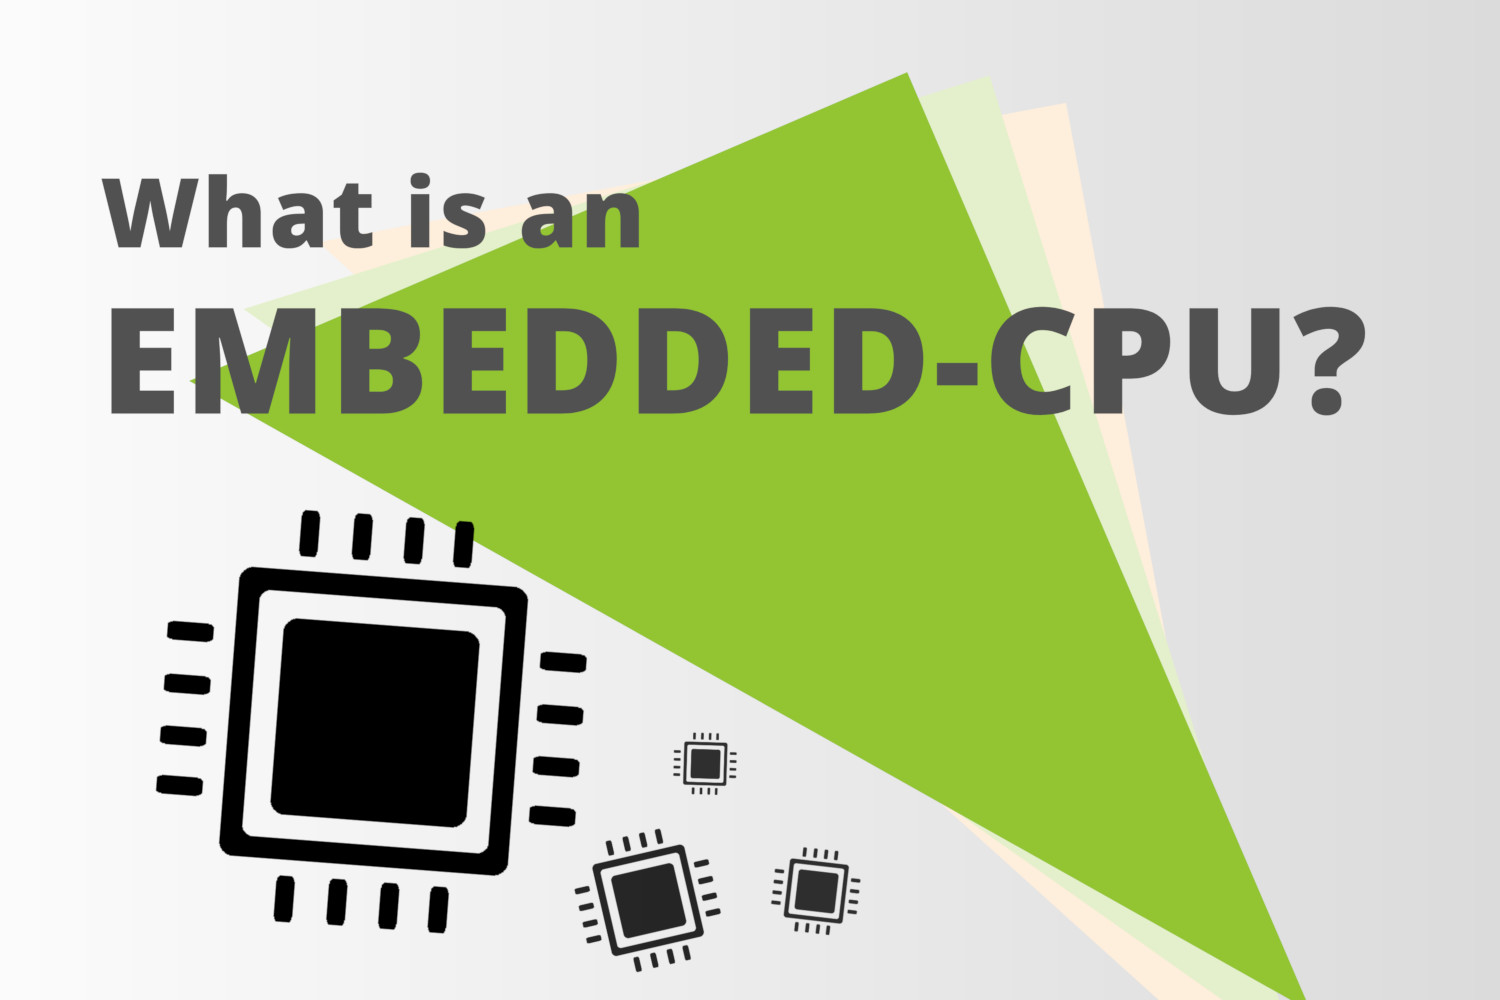 What is an Embedded-CPU?